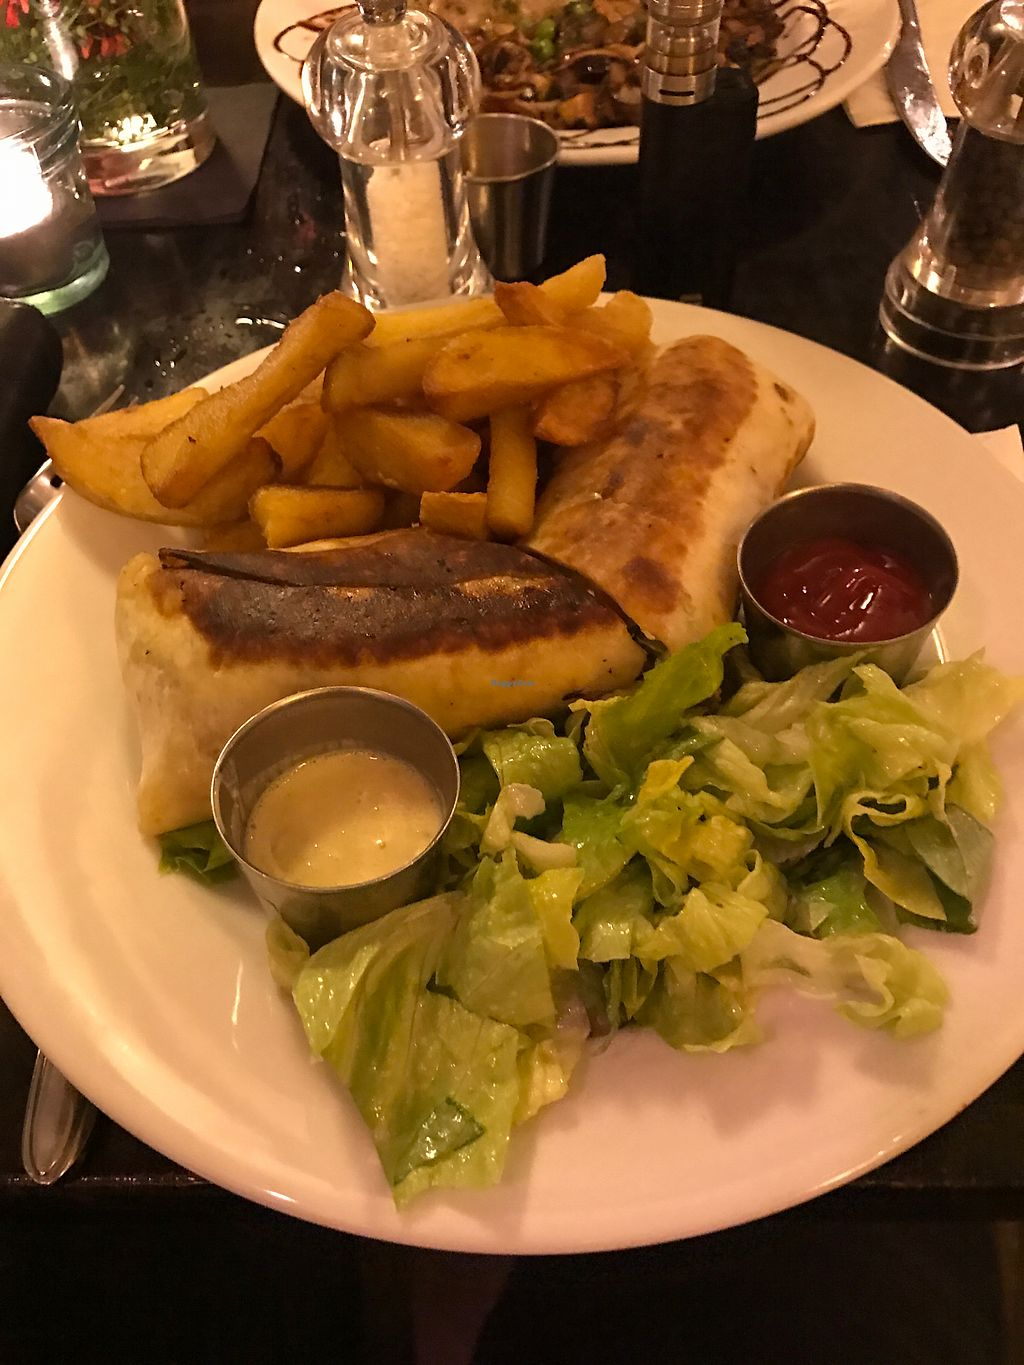 """Photo of CLOSED: Brasserie Lola  by <a href=""""/members/profile/WeDesign"""">WeDesign</a> <br/>kebab <br/> July 7, 2017  - <a href='/contact/abuse/image/52172/277579'>Report</a>"""